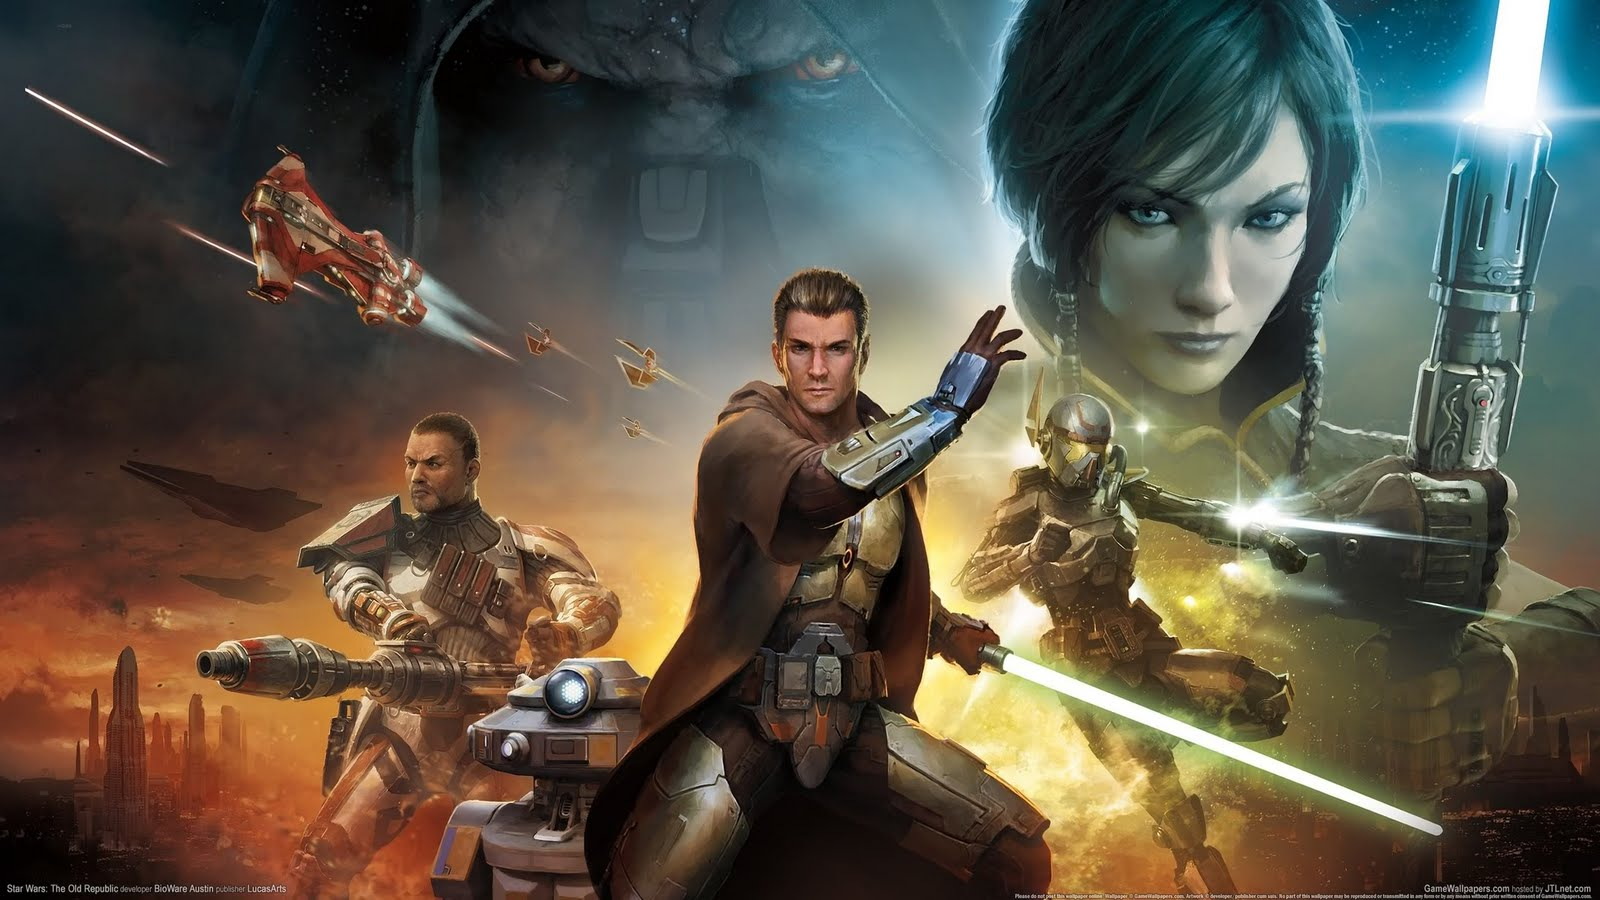 Wallpaper star wars the old republic 04 2560x1440